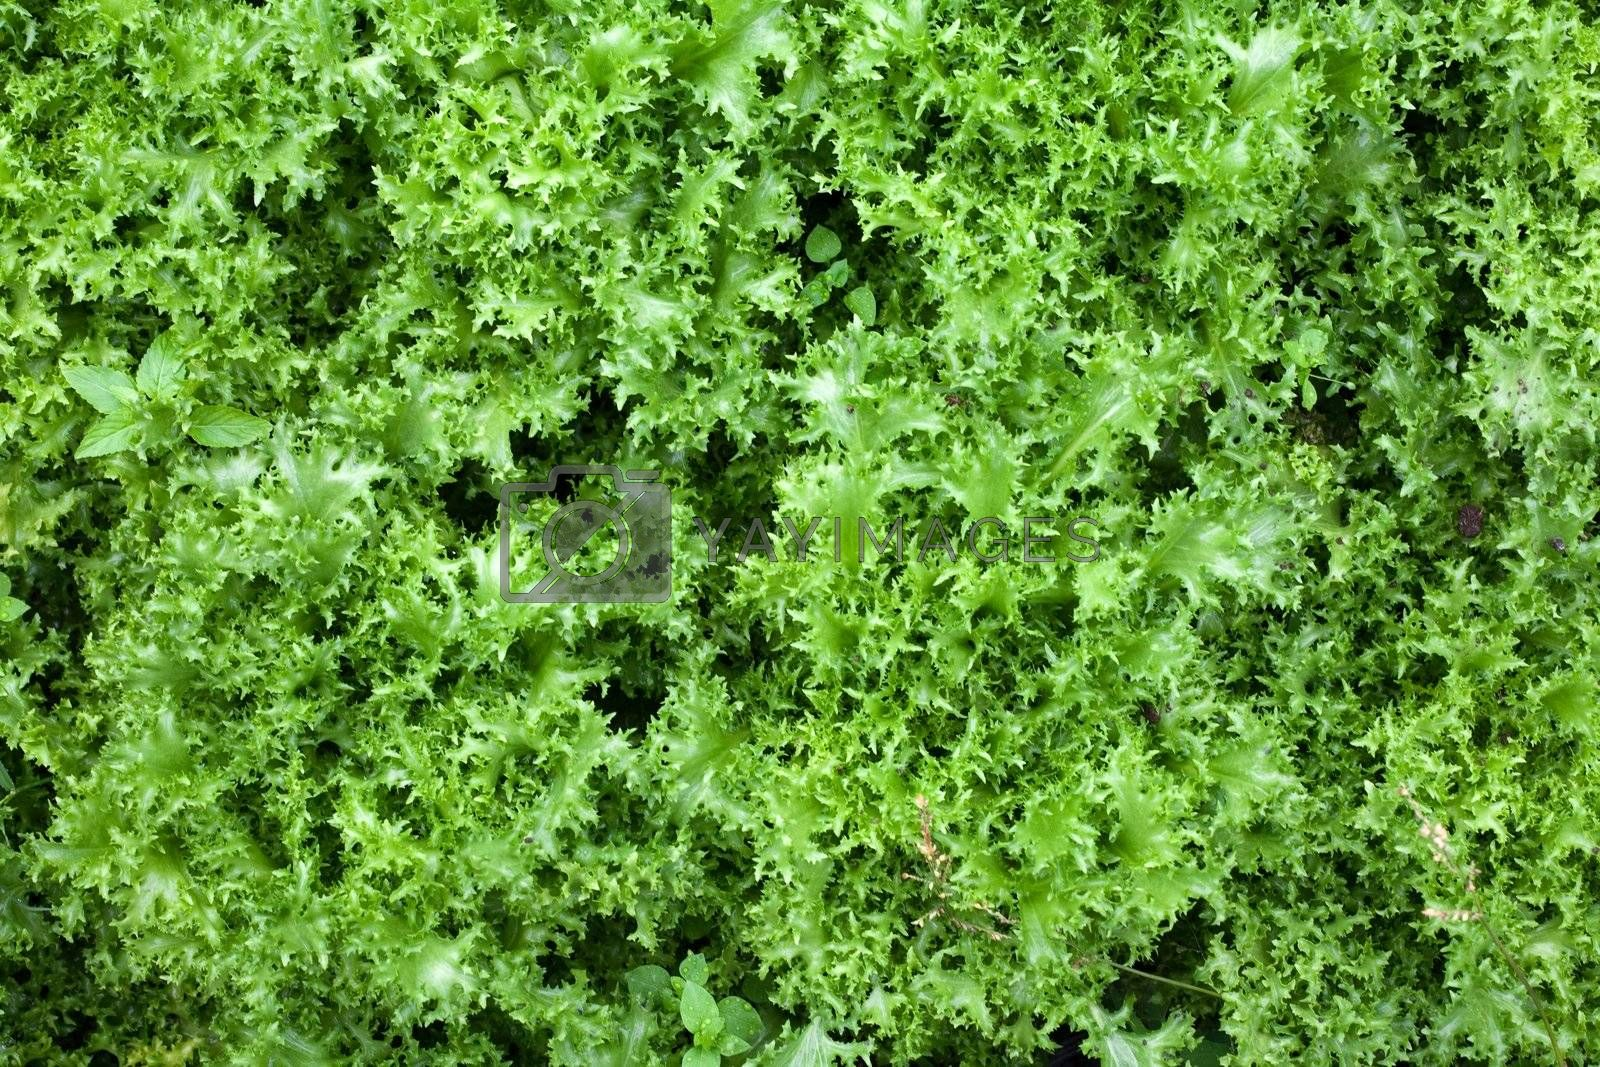 An image of healthy food: green lettuce